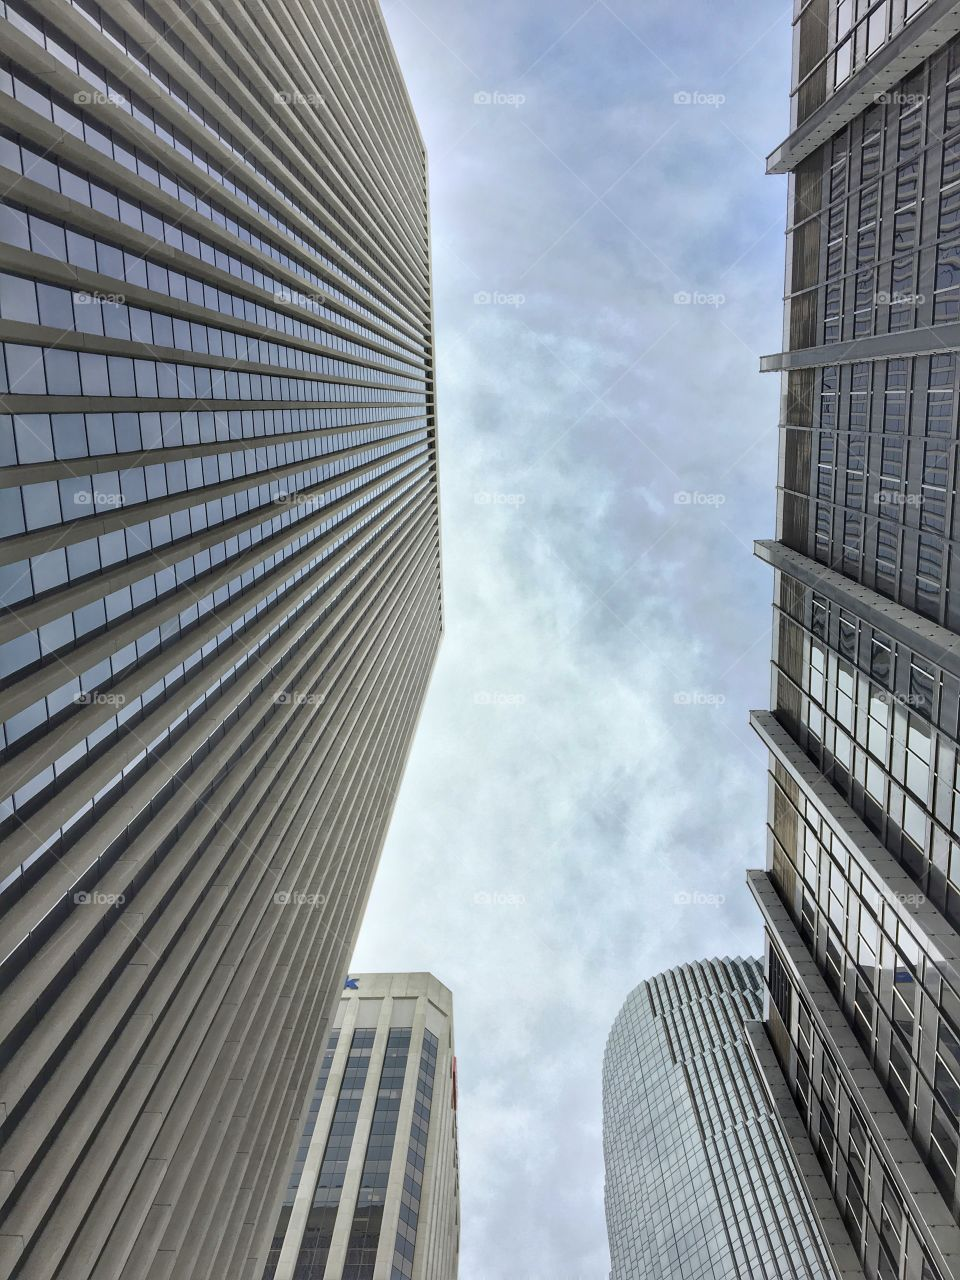 High buildings of San Francisco. View from underneath.